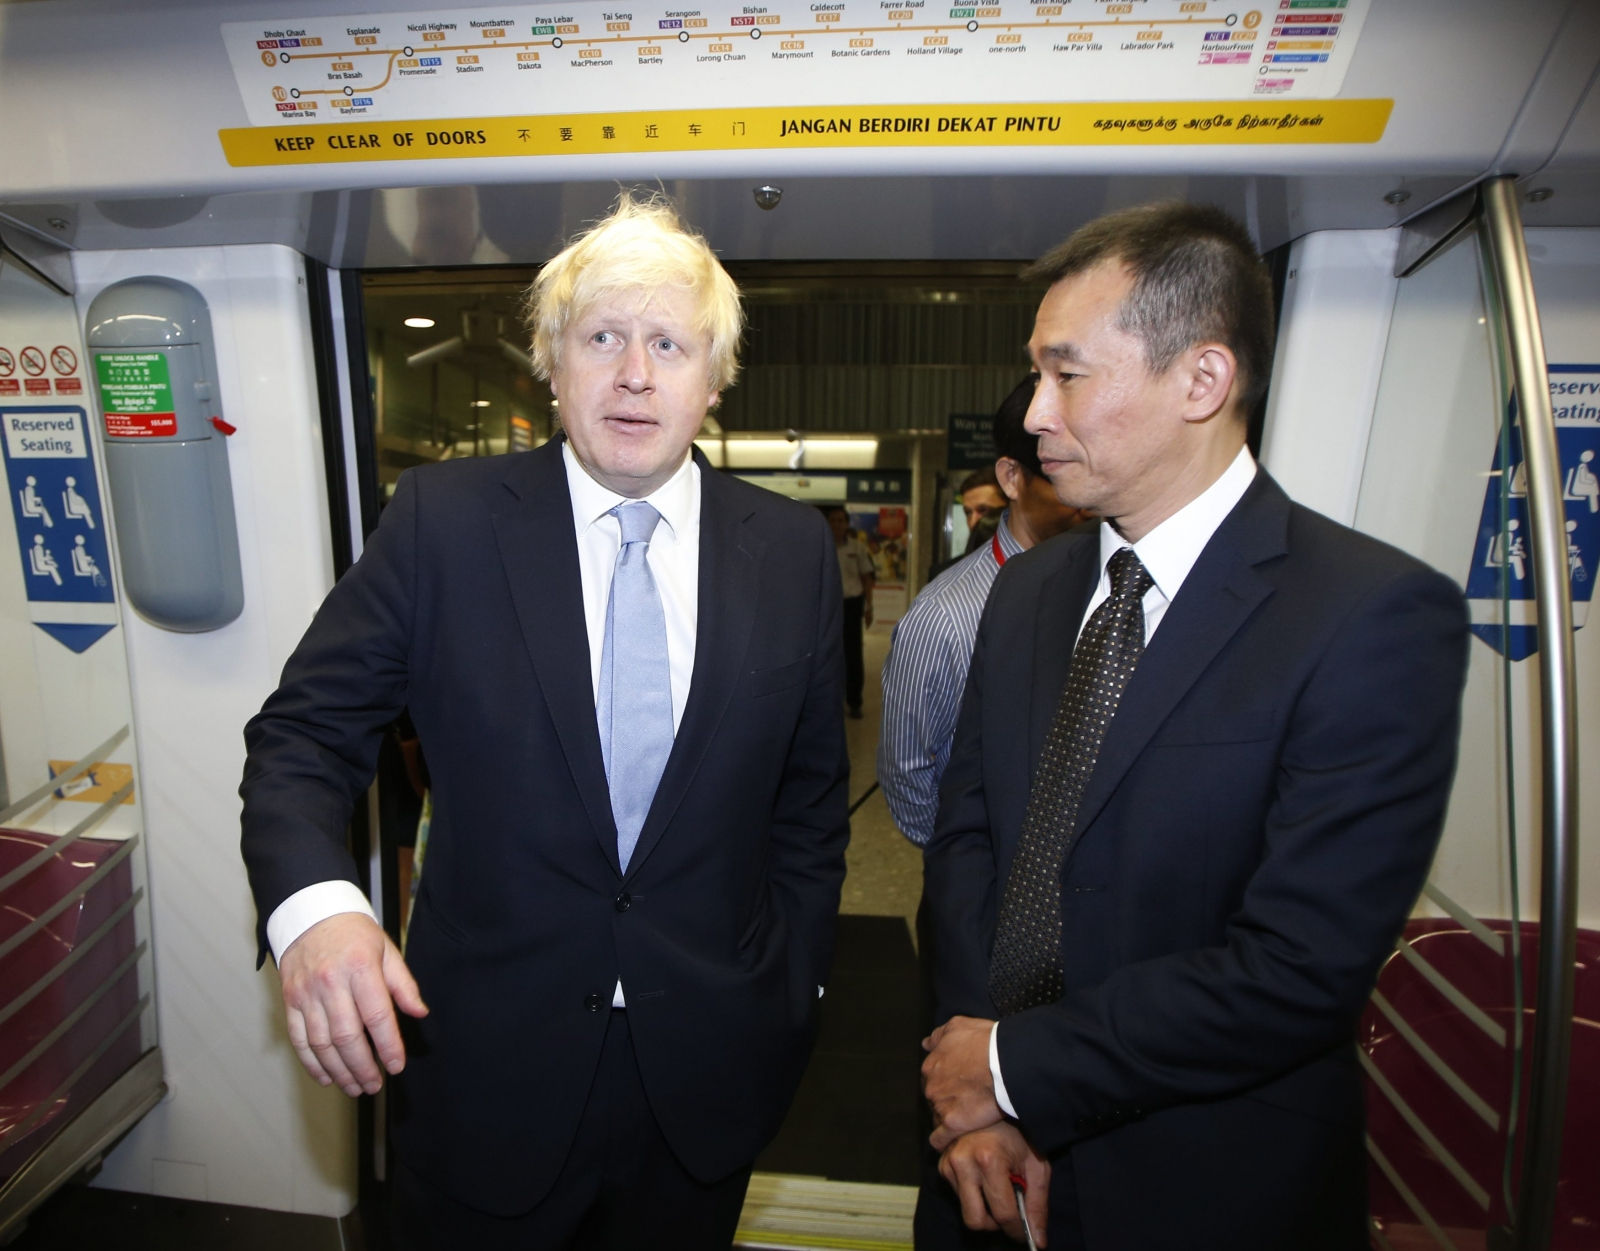 Boris Johnson Takes a Seat on Singapore's Public Transport